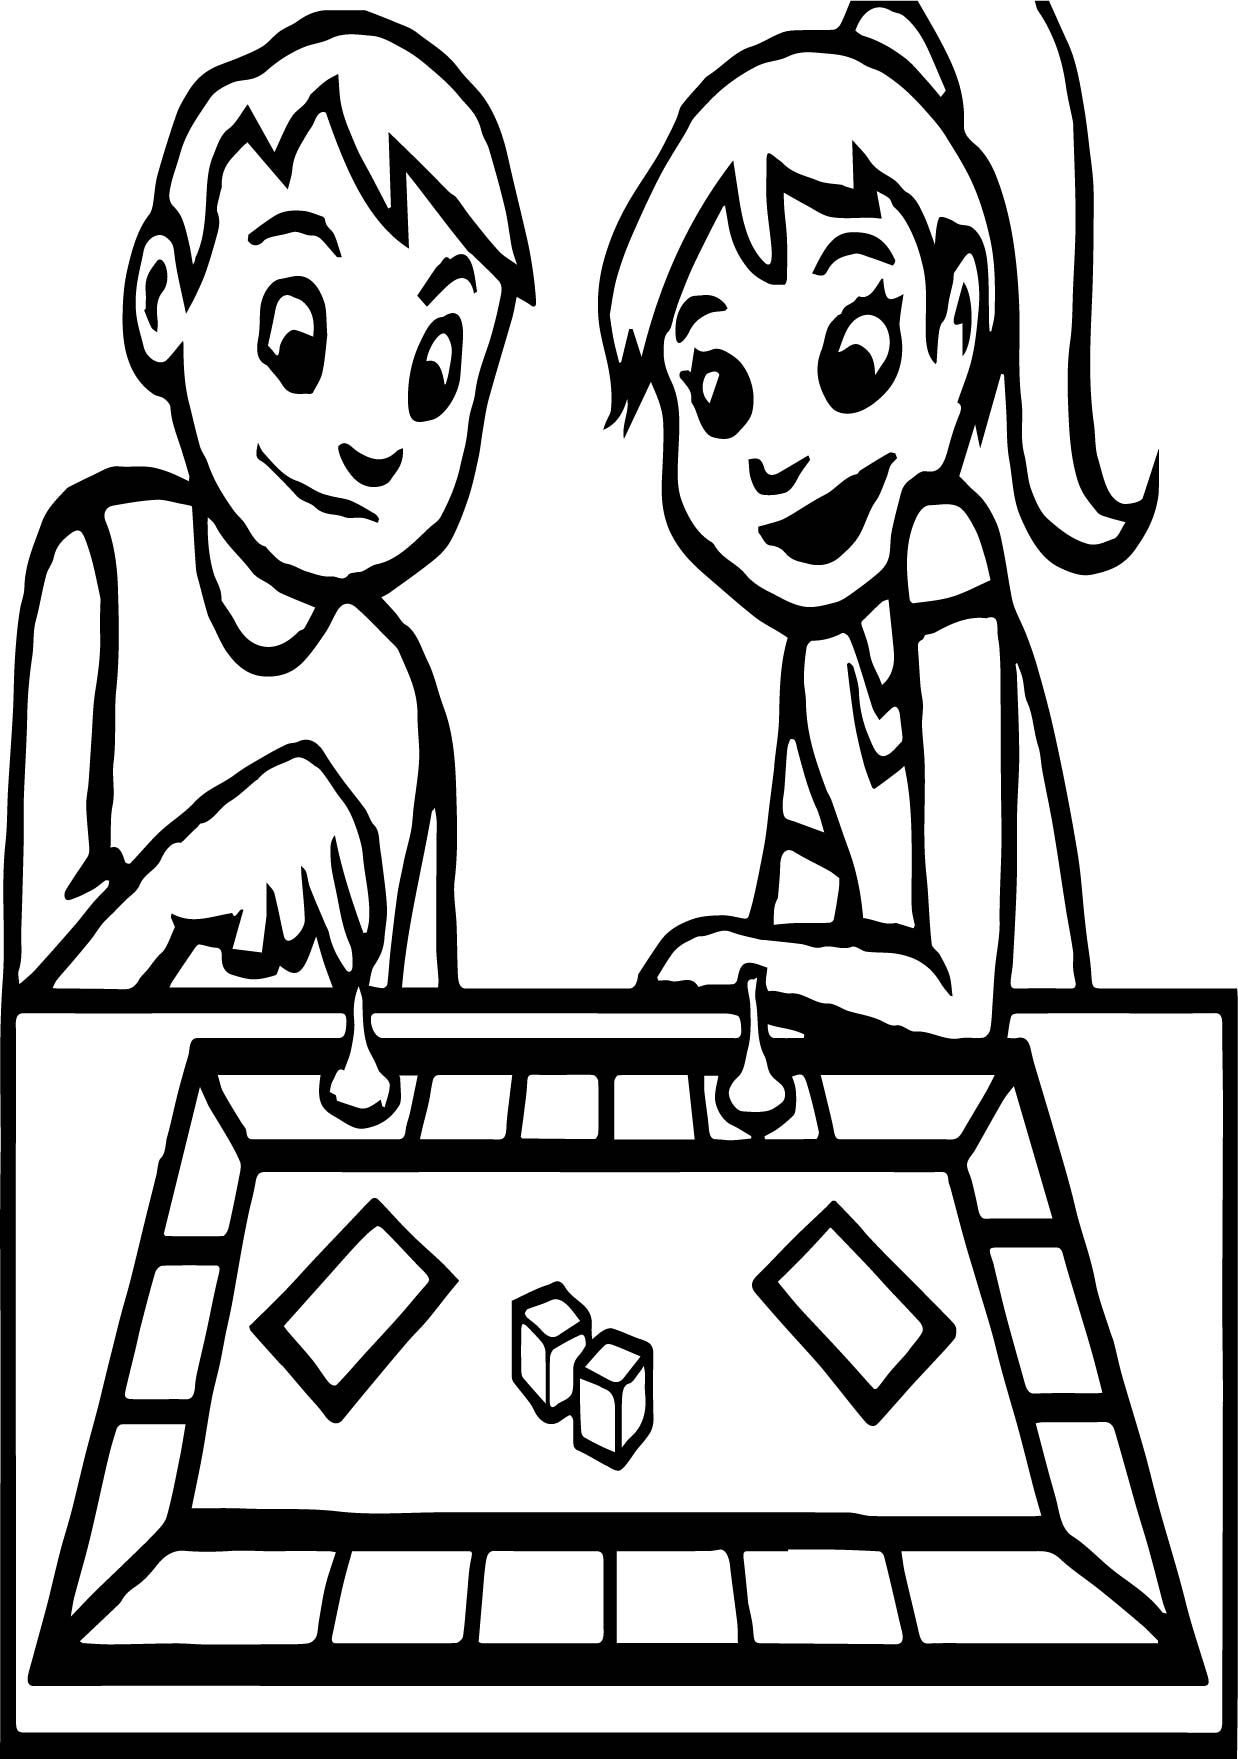 coloring games online for teenagers caillou playing video game coloring pages cool coloring games coloring online for teenagers